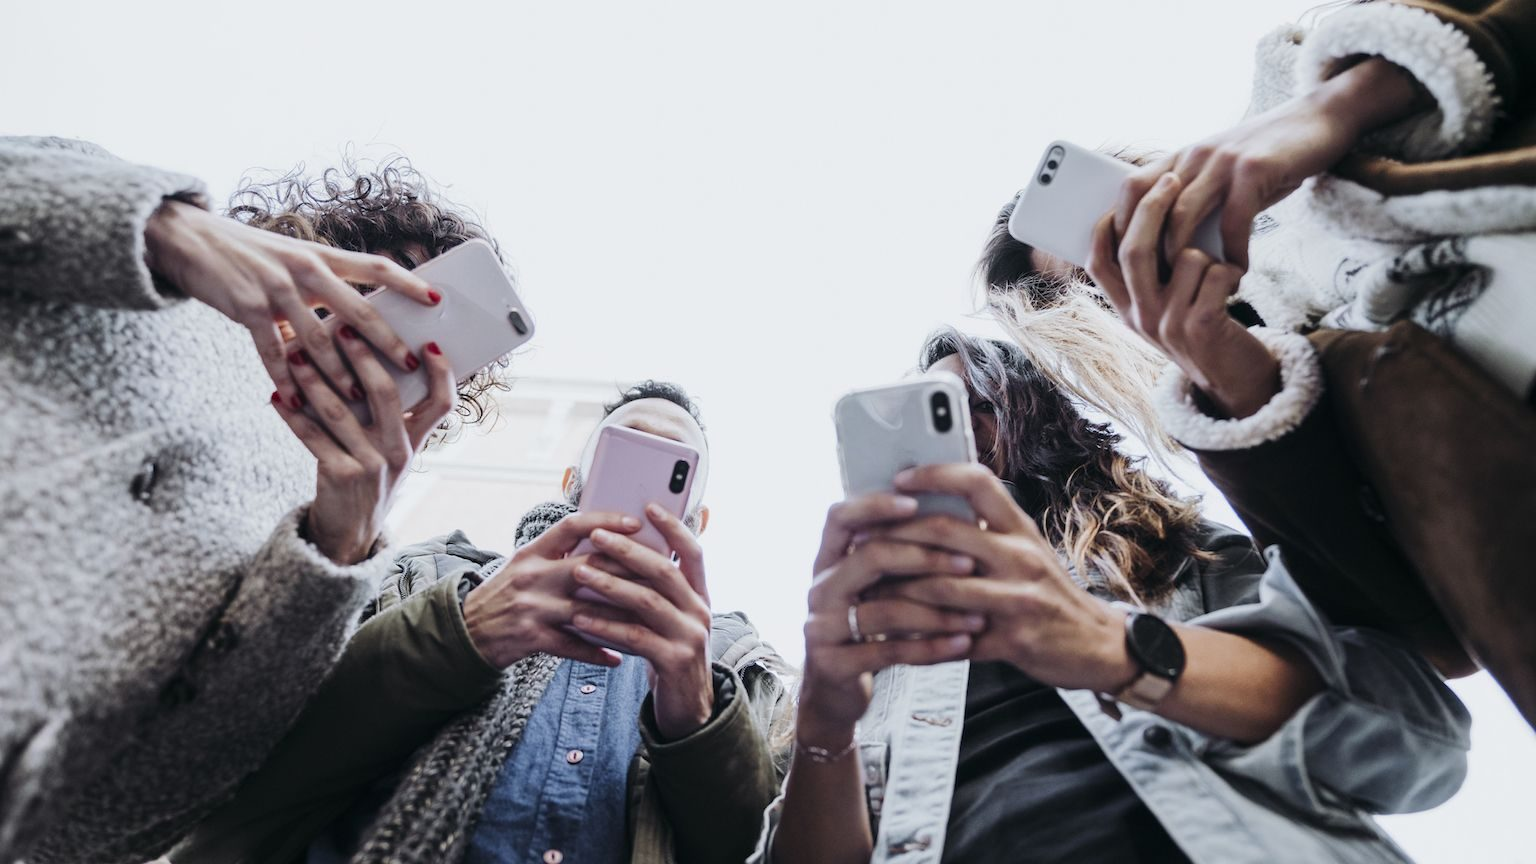 A group of young people holding up their smartphones